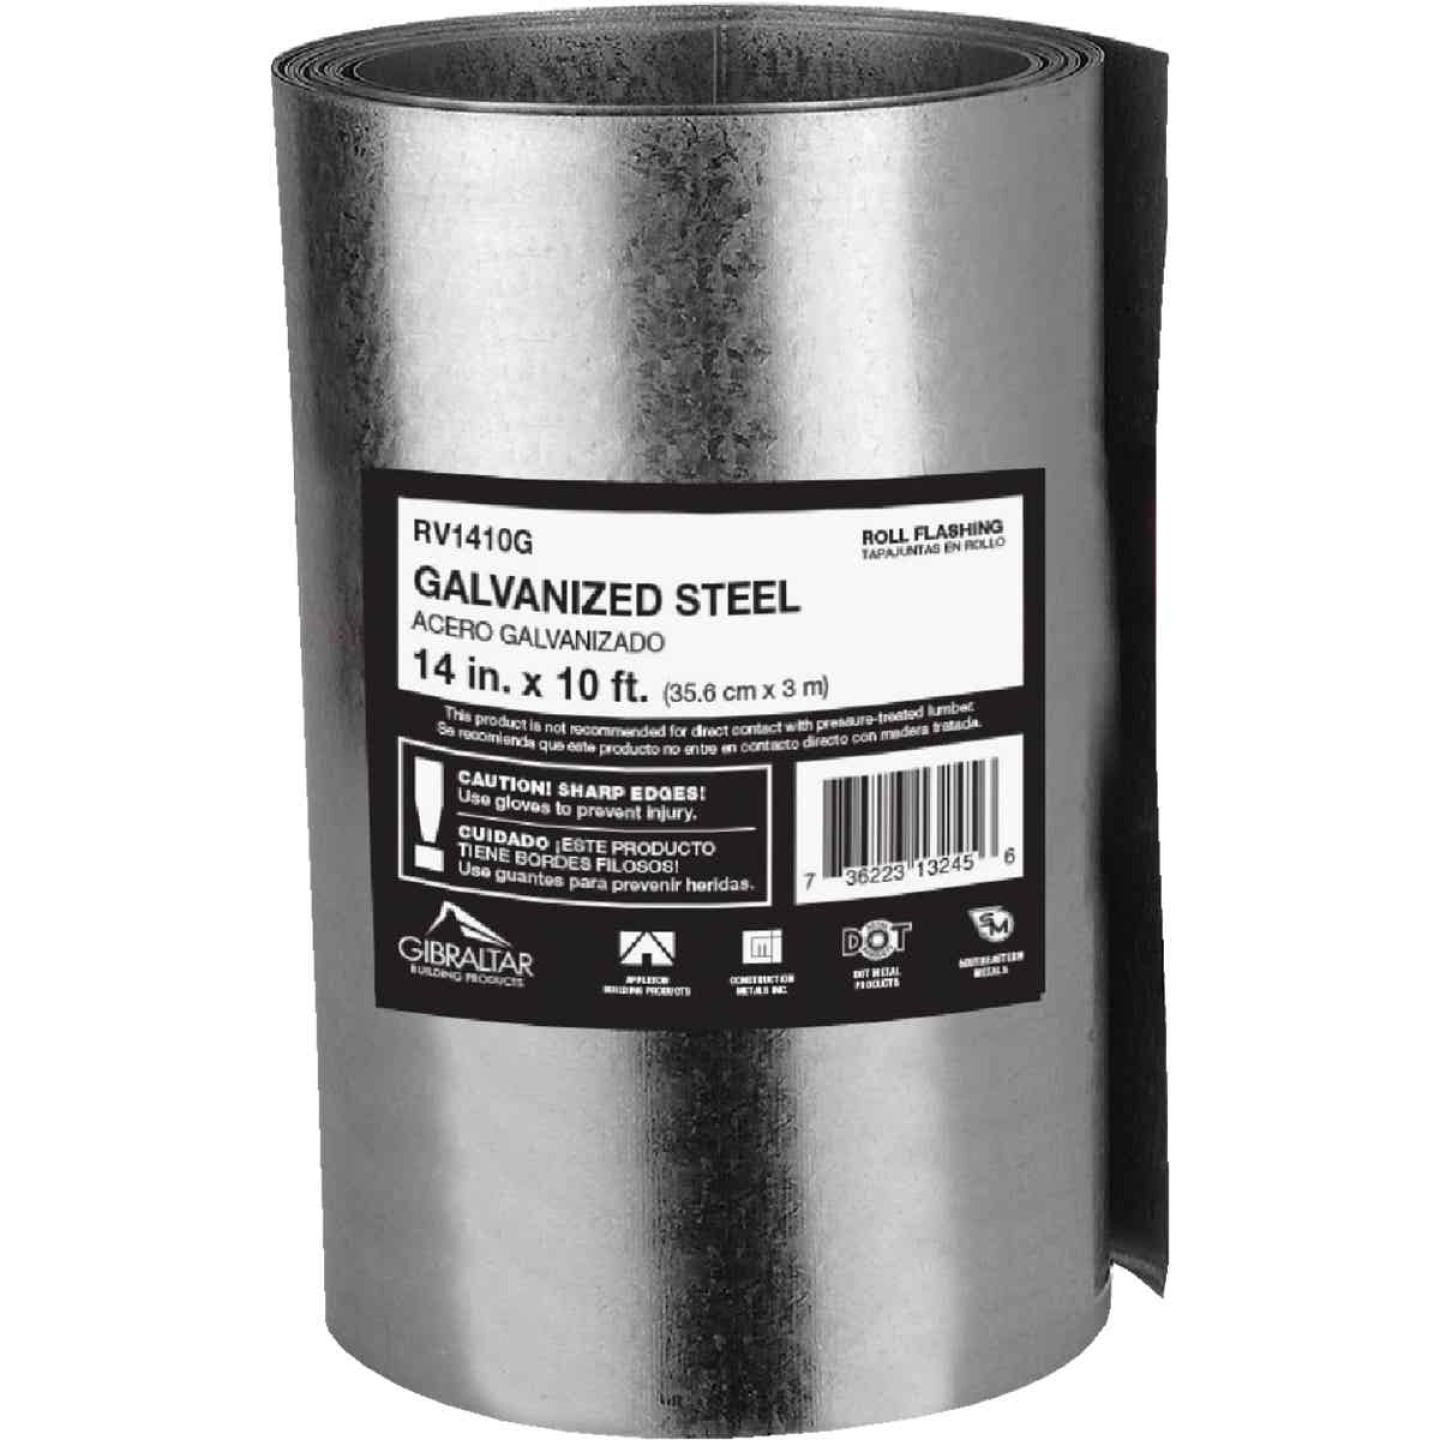 NorWesco 14 In. x 10 Ft. Mill Galvanized Roll Valley Flashing Image 1